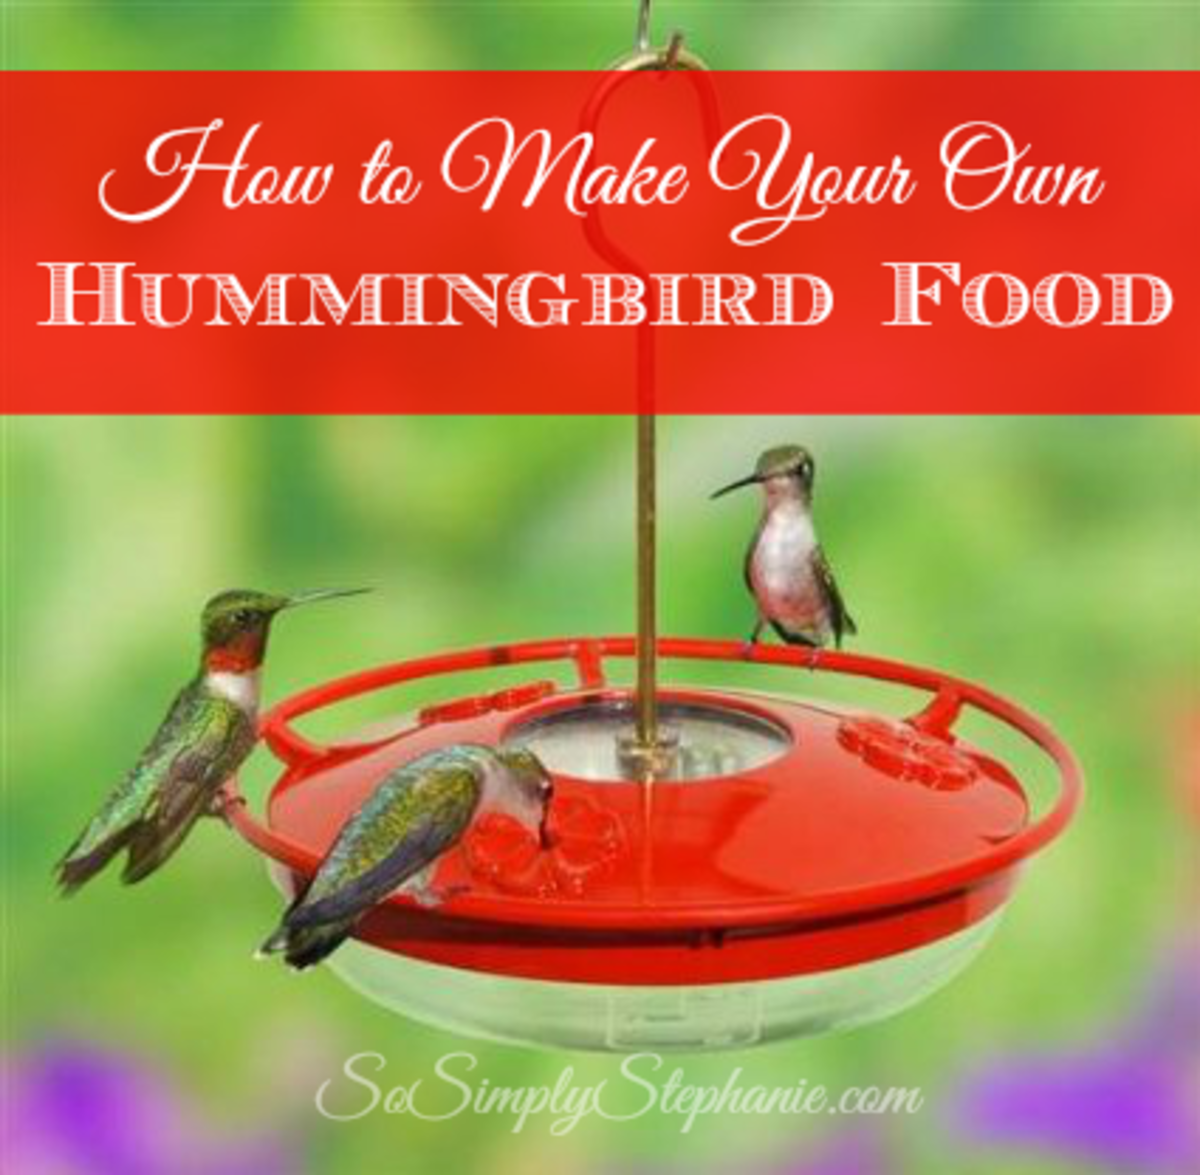 Hummingbird Food. What do Hummingbirds Eat?